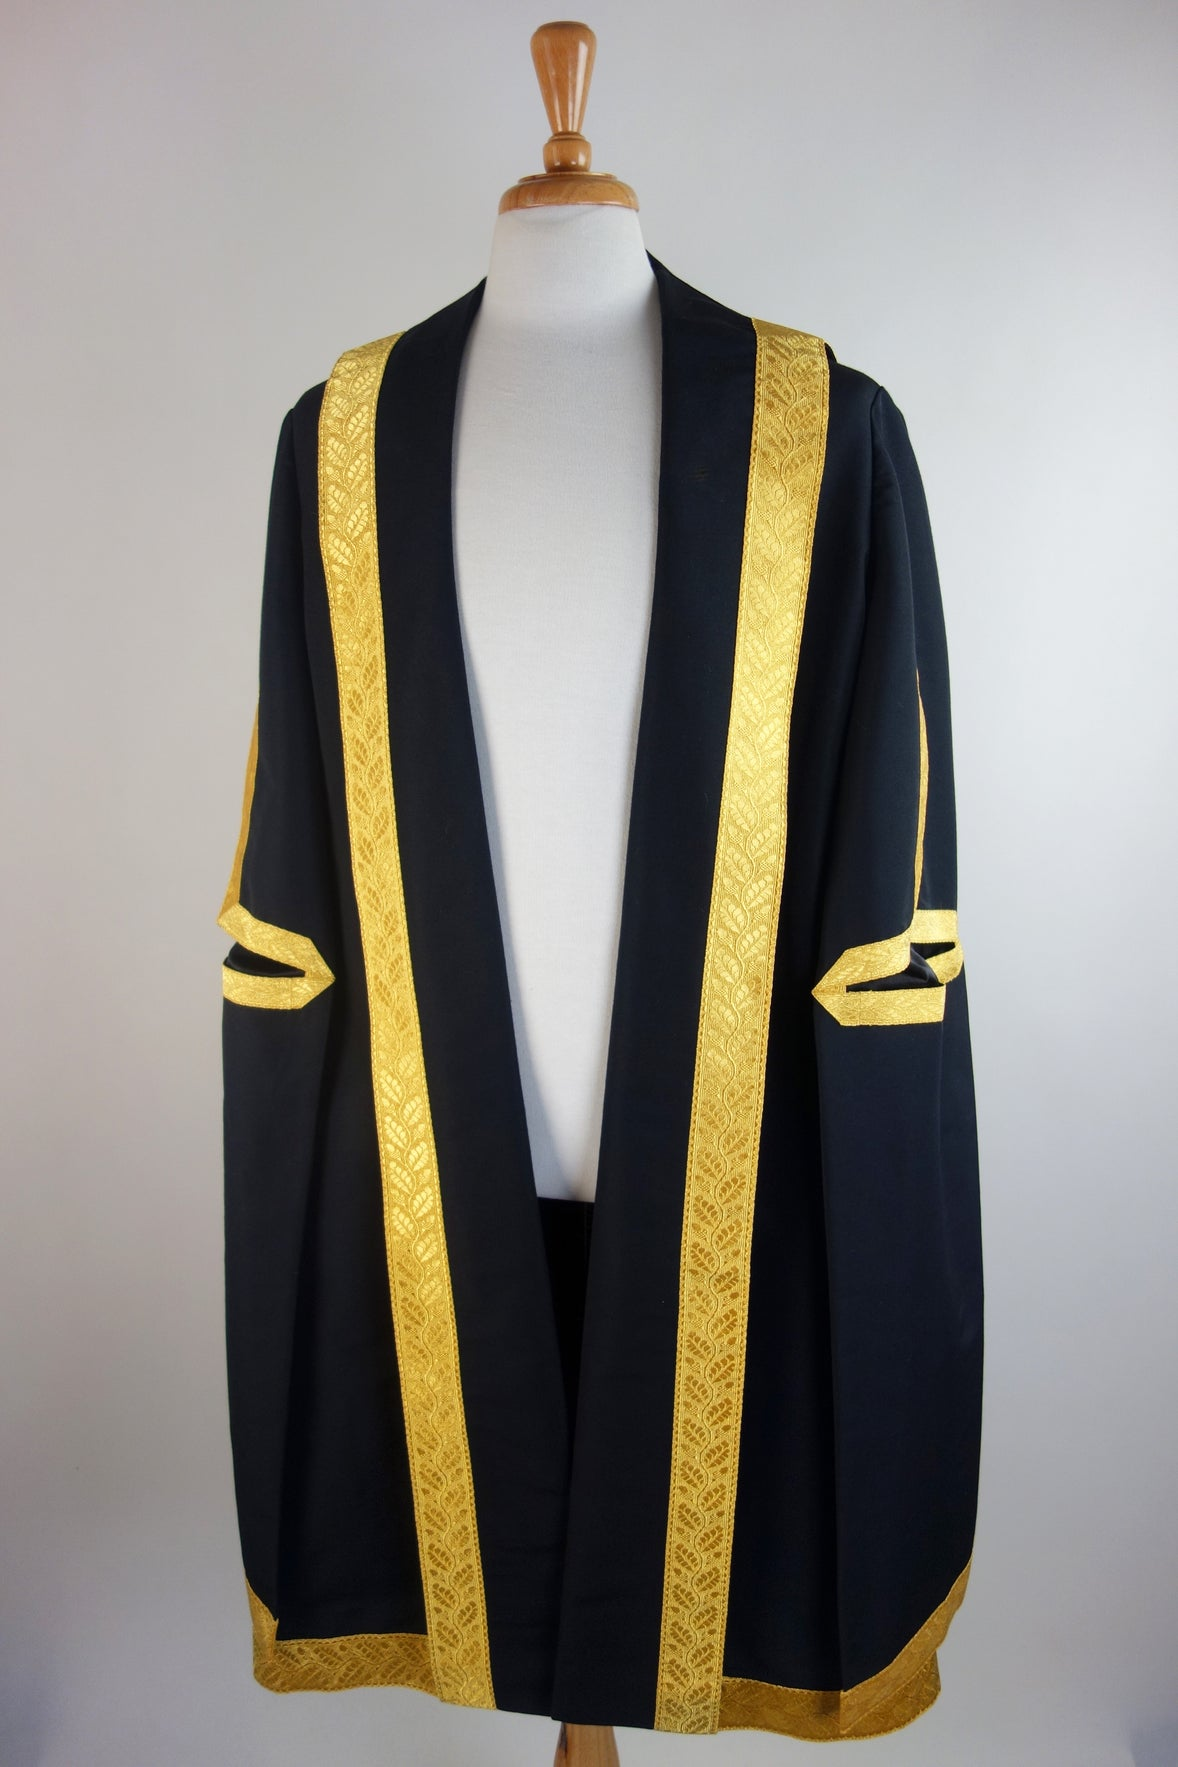 USQ Vice Chancellor Robe